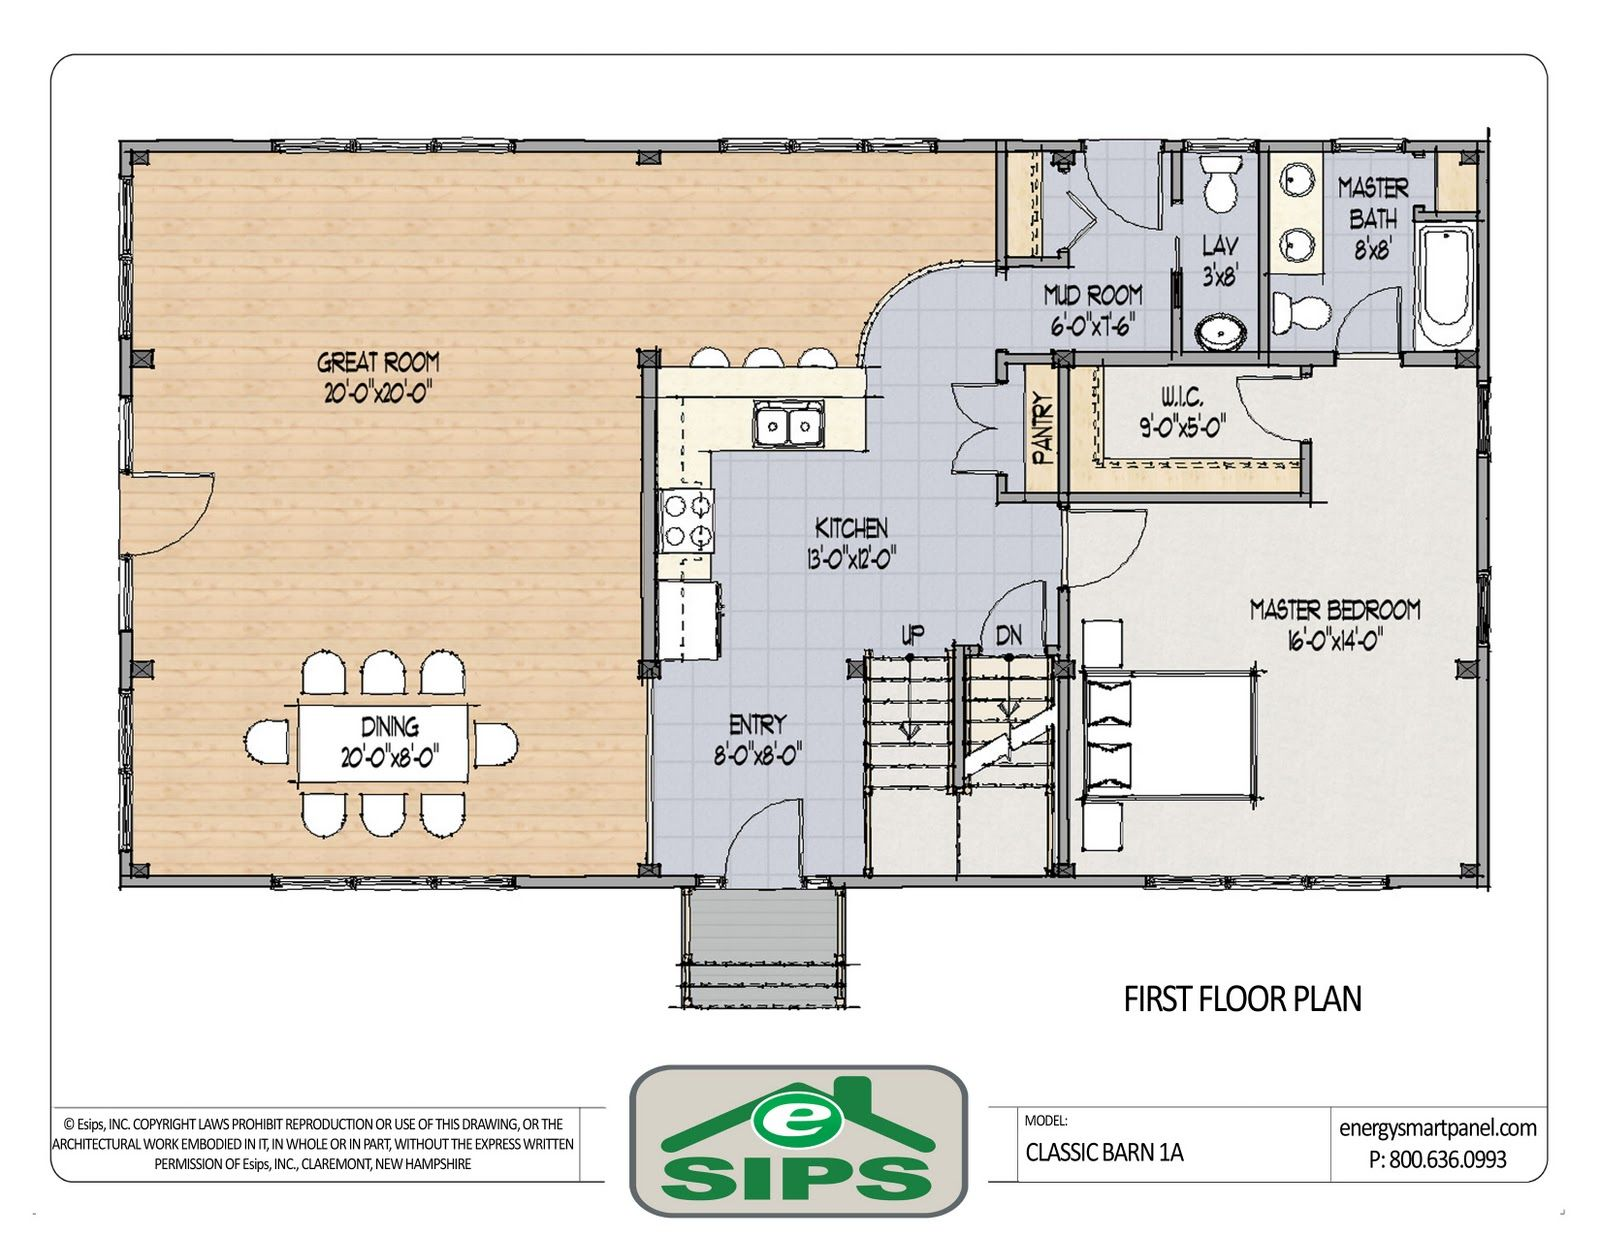 Barn house open floor plans example of open concept barn home plan the main living areas are Buy house plans